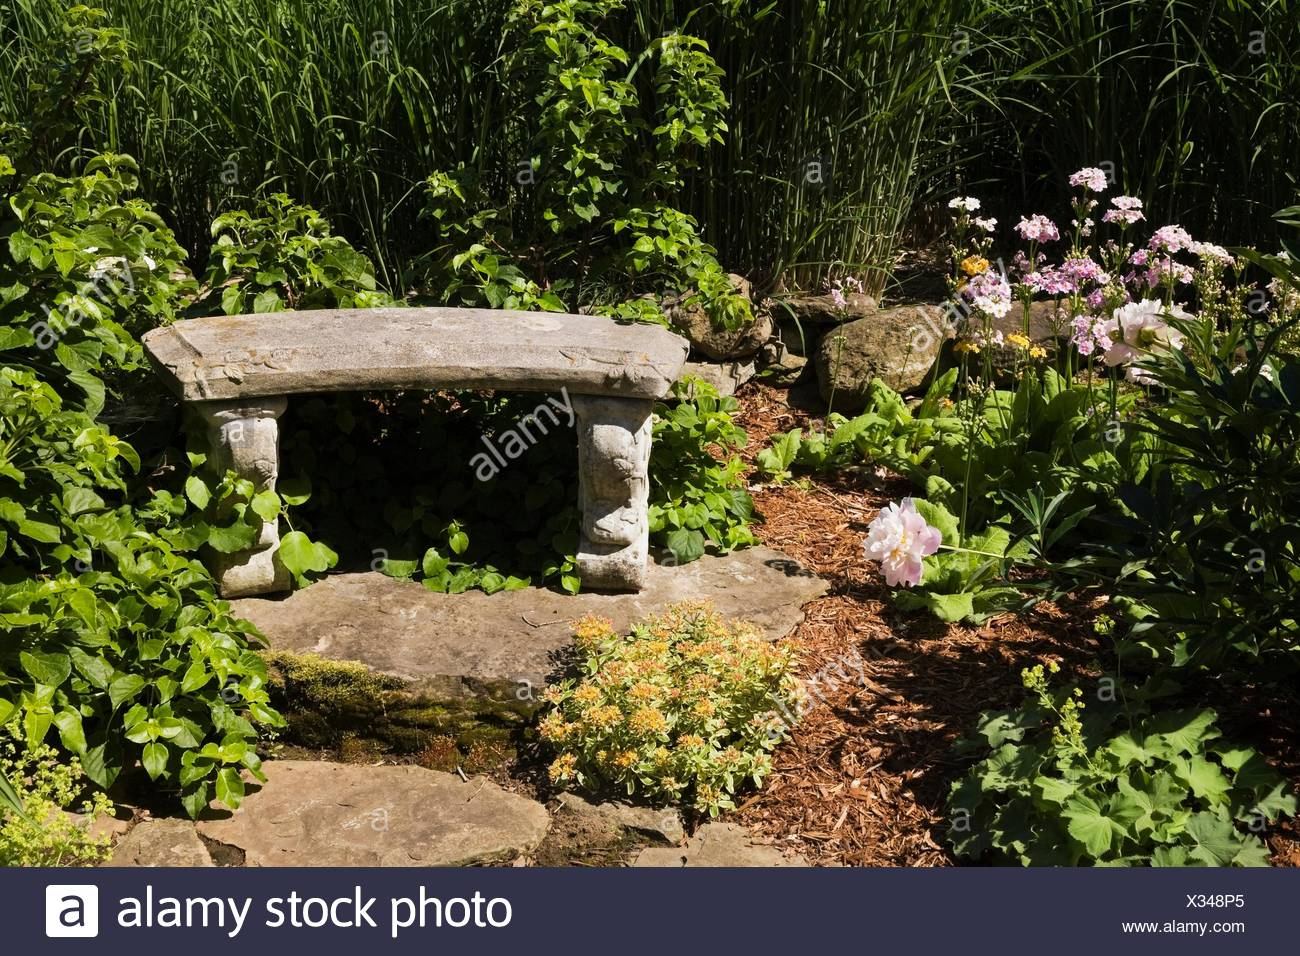 Border With Romanesque Garden Bench And Perennial Plants Flowers